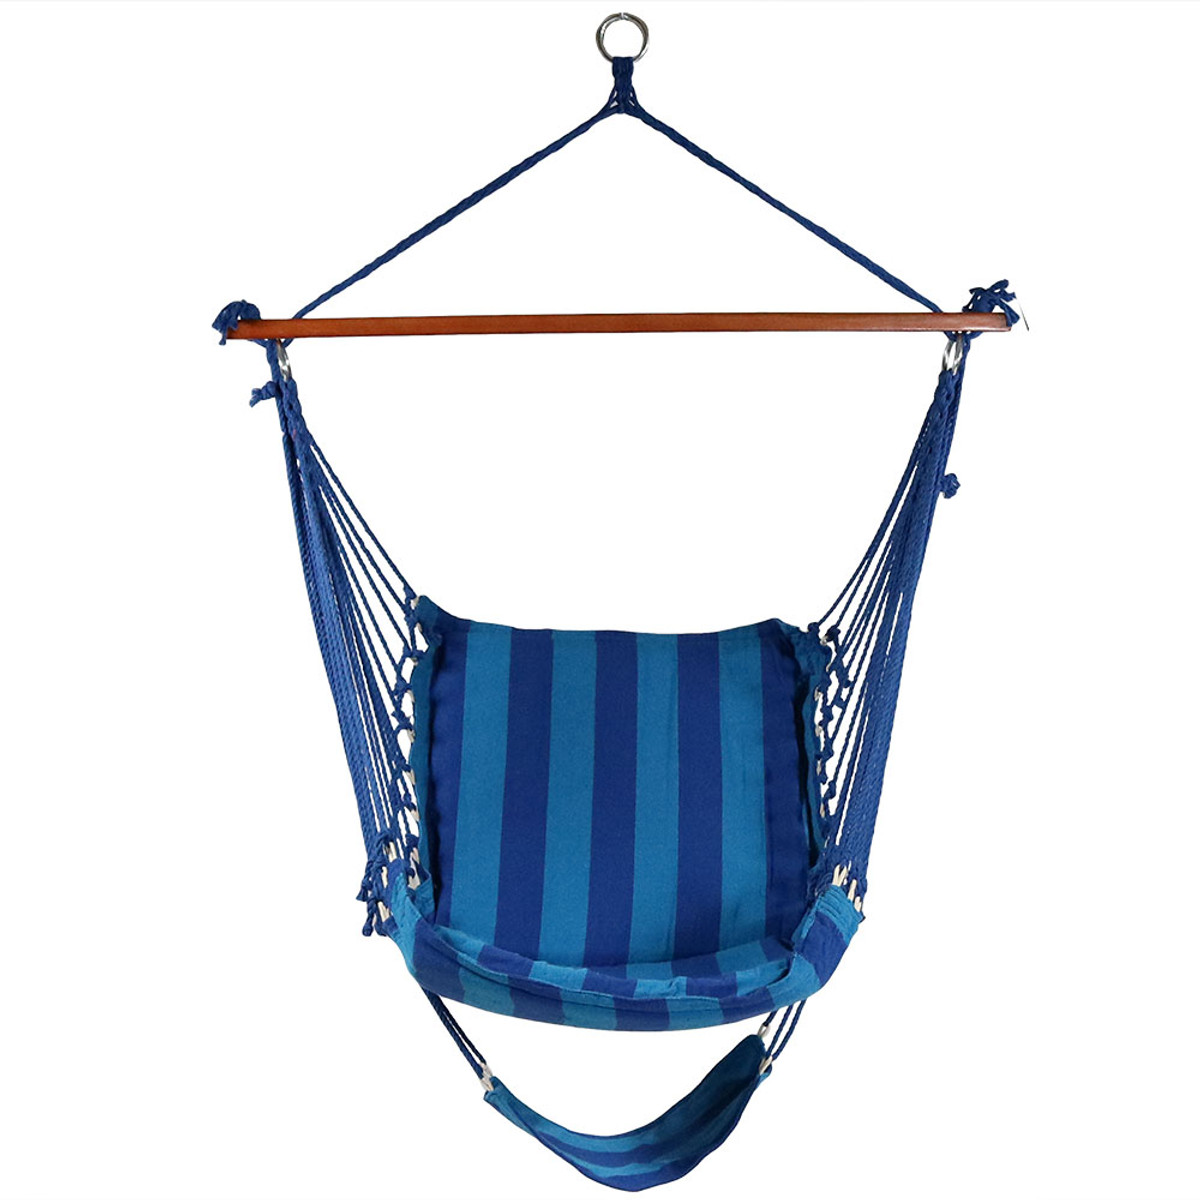 Sunnydaze Hanging Padded Soft Cushioned Hammock Chair With Footrest, 26  Inch Wide Seat